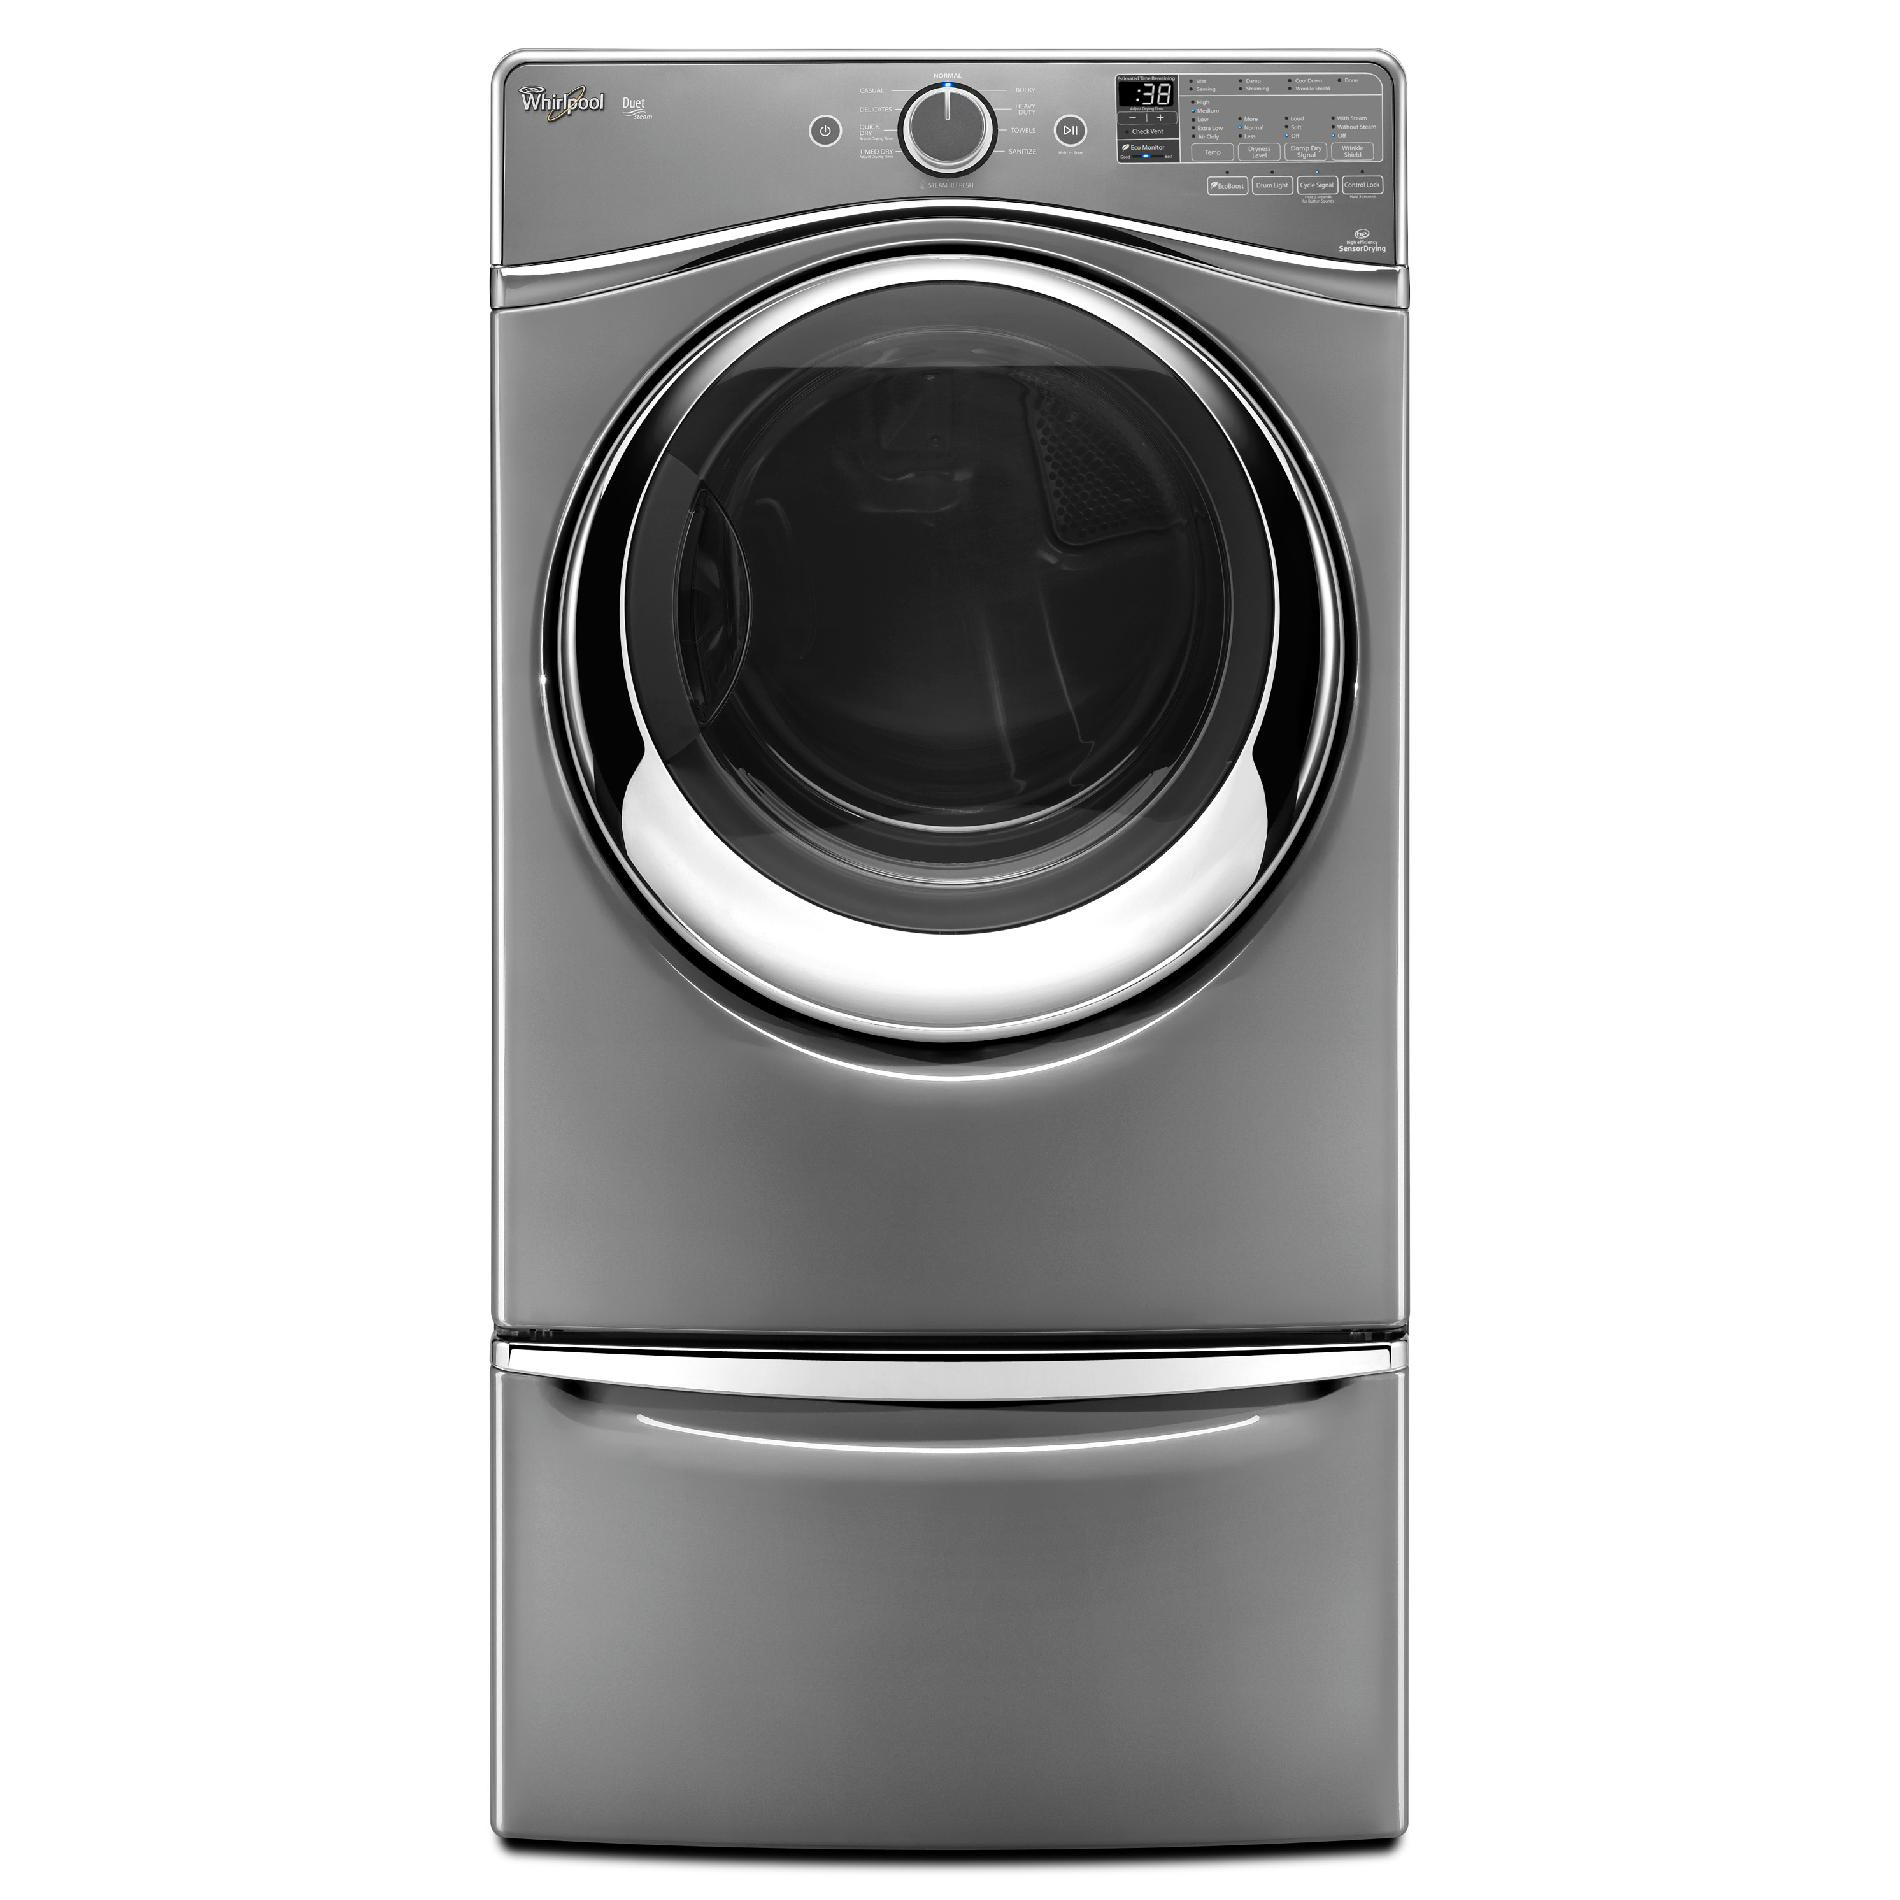 Whirlpool WGD95HEDC 7.4 cu. ft. Duet® Gas Dryer w/ Stainless Steel Drum - Chrome Shadow WGD95HEDC